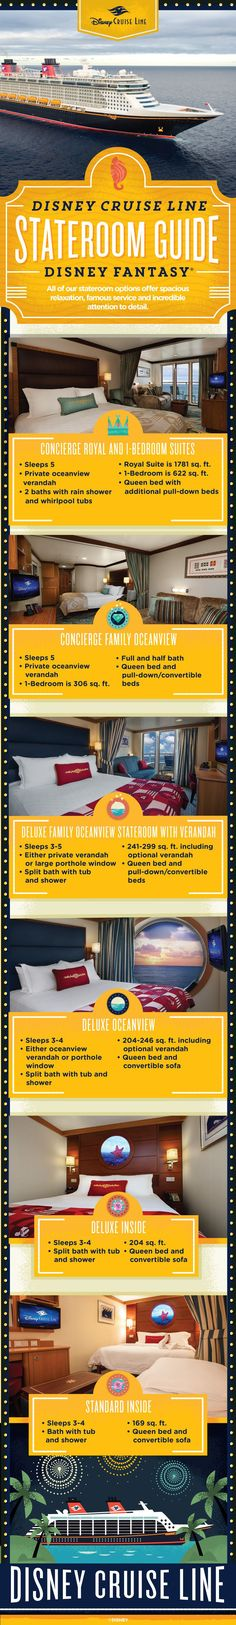 All Disney Cruise Line stateroom options offer spacious relaxation, famous Guest service and incredible attention to detail. Check out this handy guide to see which stateroom is best for your family onboard the Disney Fantasy then contact me for your free No Obligation quote today!